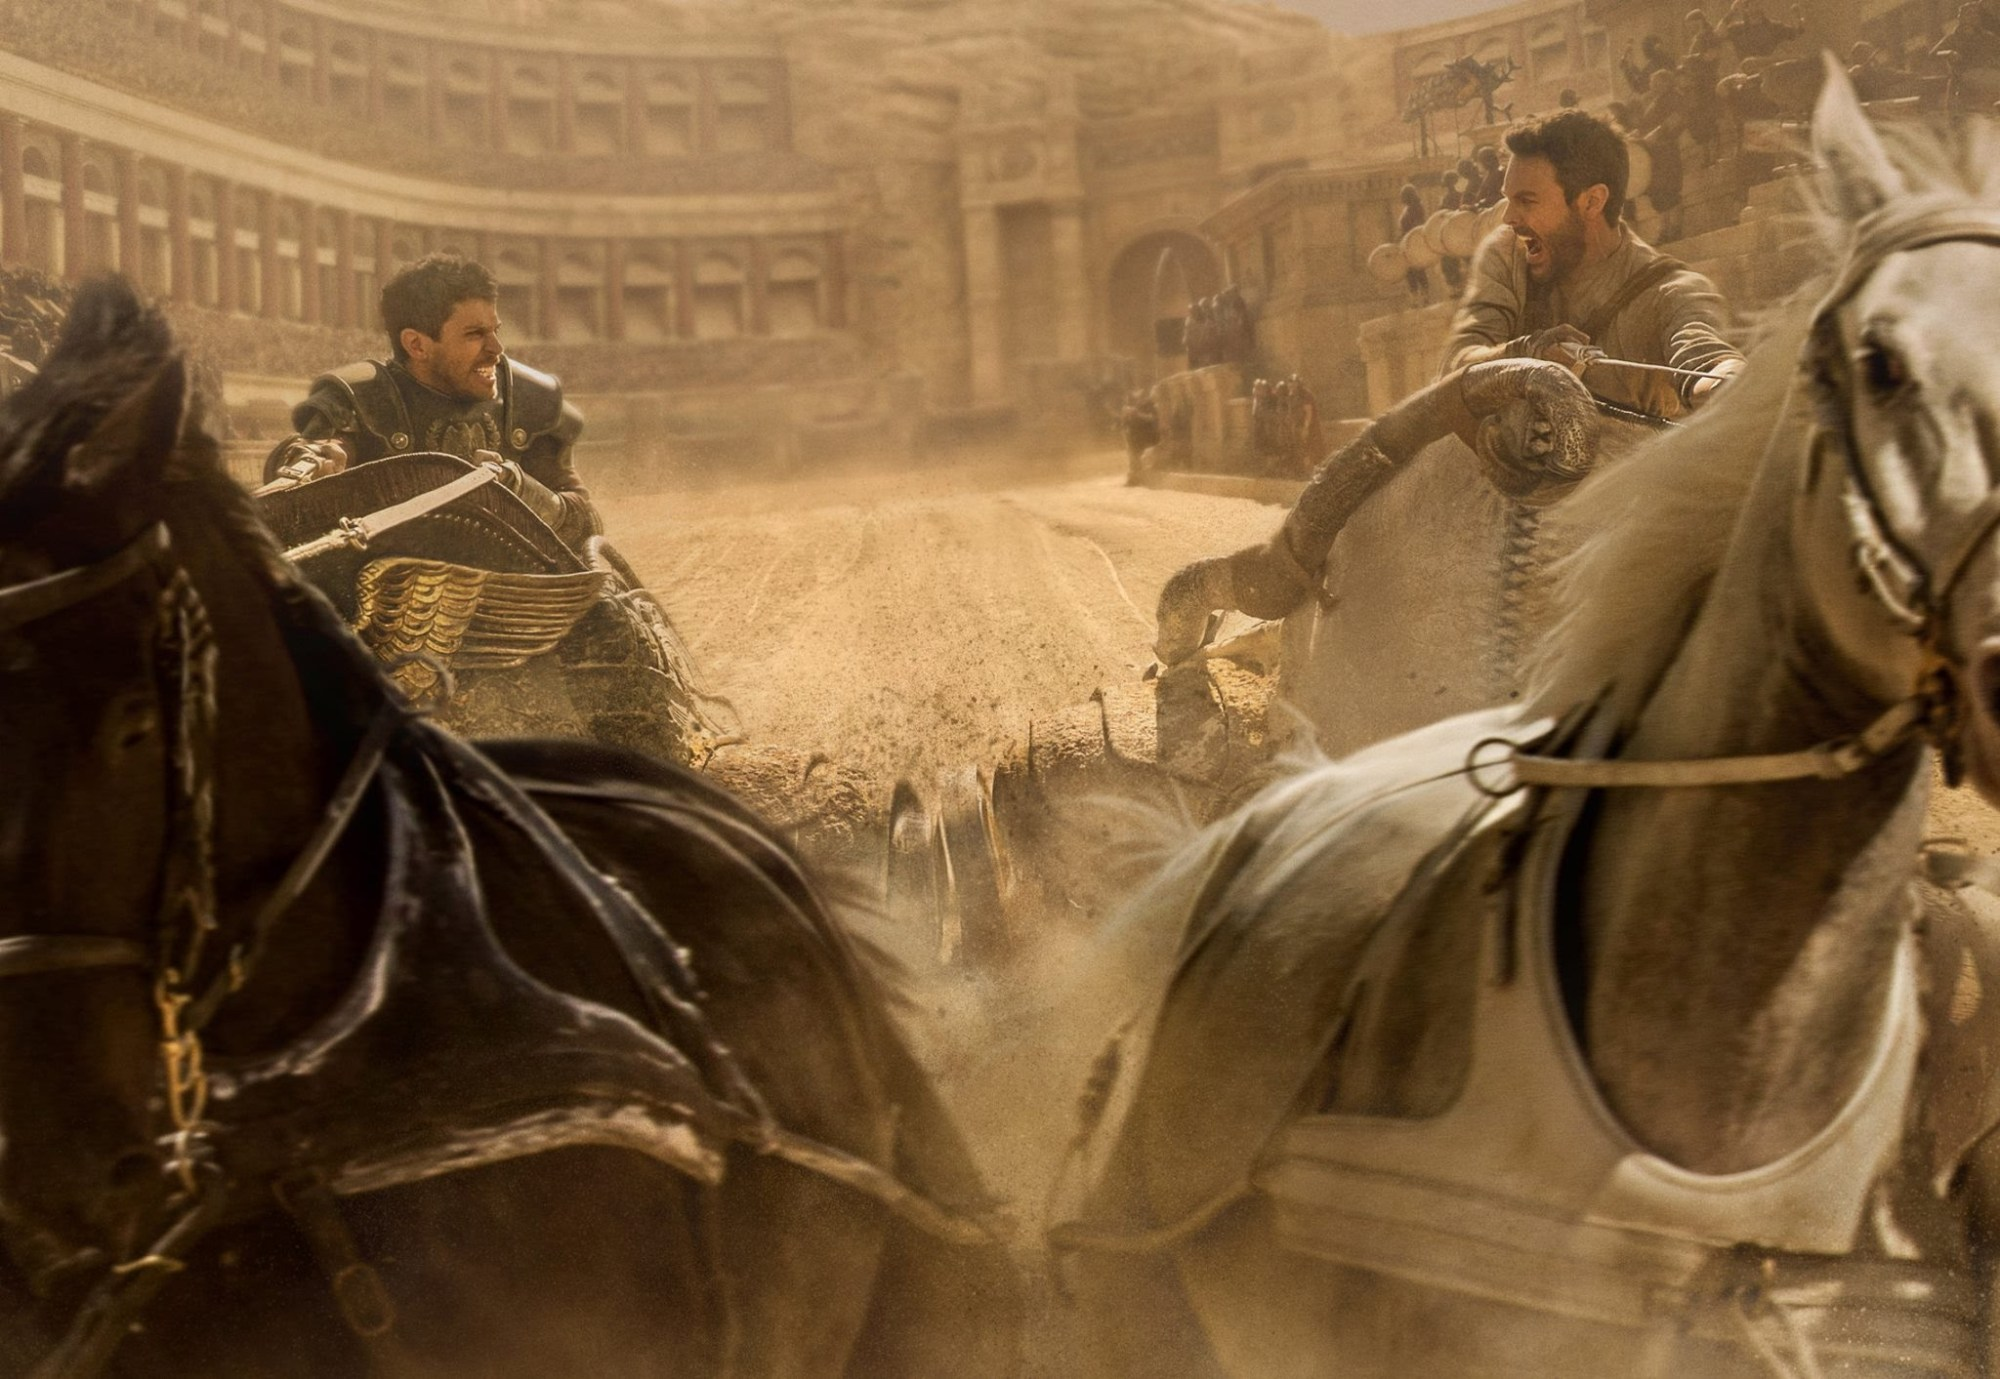 an analysis of the topic of ben hur movie Ben hur movie review essays in 1987, nella nardi and her husband aldo had one objective, deliver nutritious fresh made food within a warm and friendly environment.